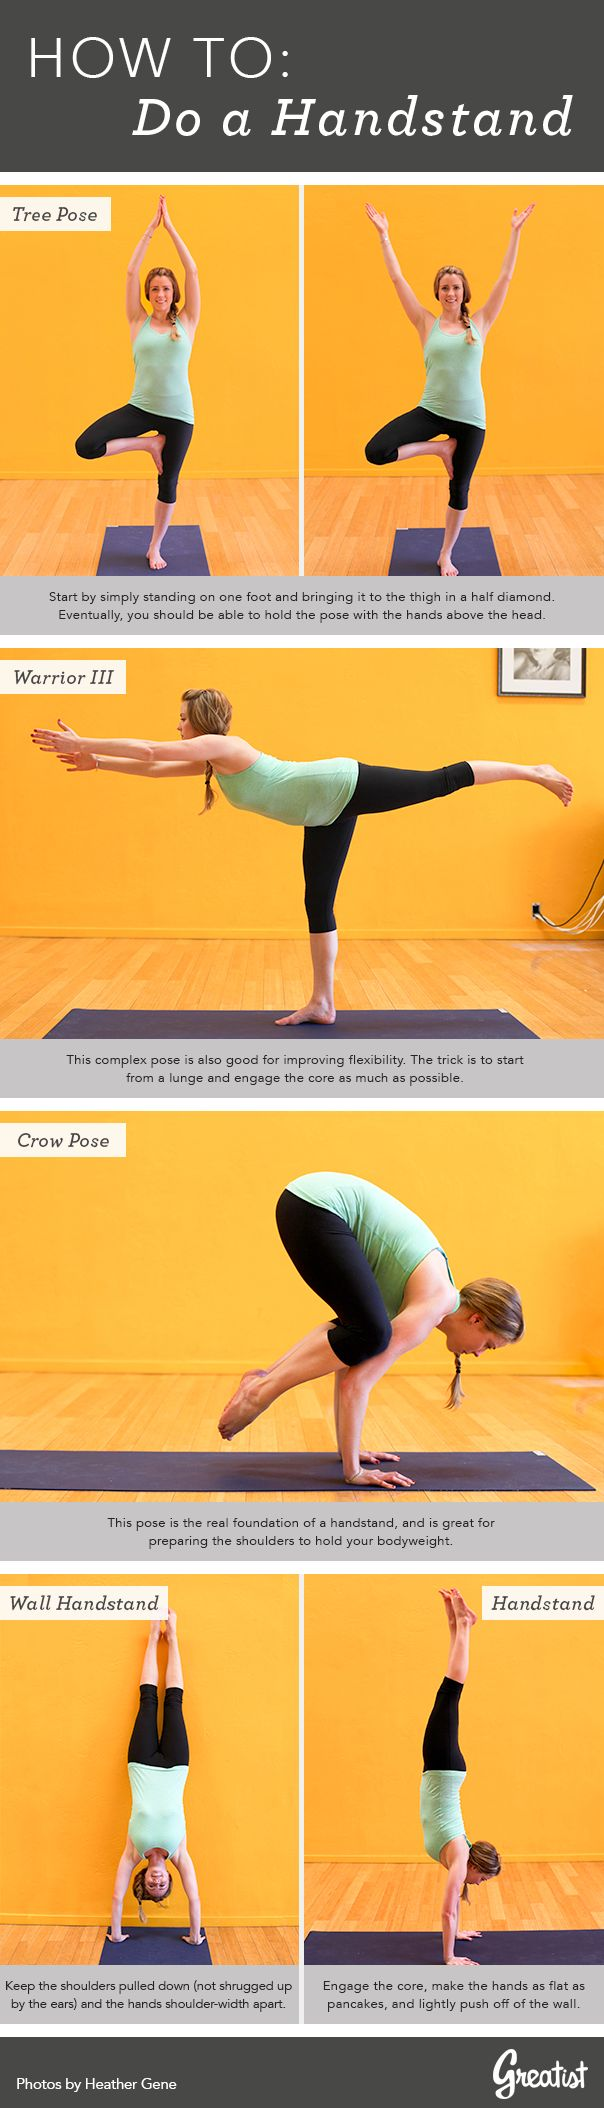 How to do a handstand...with prep poses! https://www.facebook.com/pages/Healthy-Vibrant-You/381747648567846